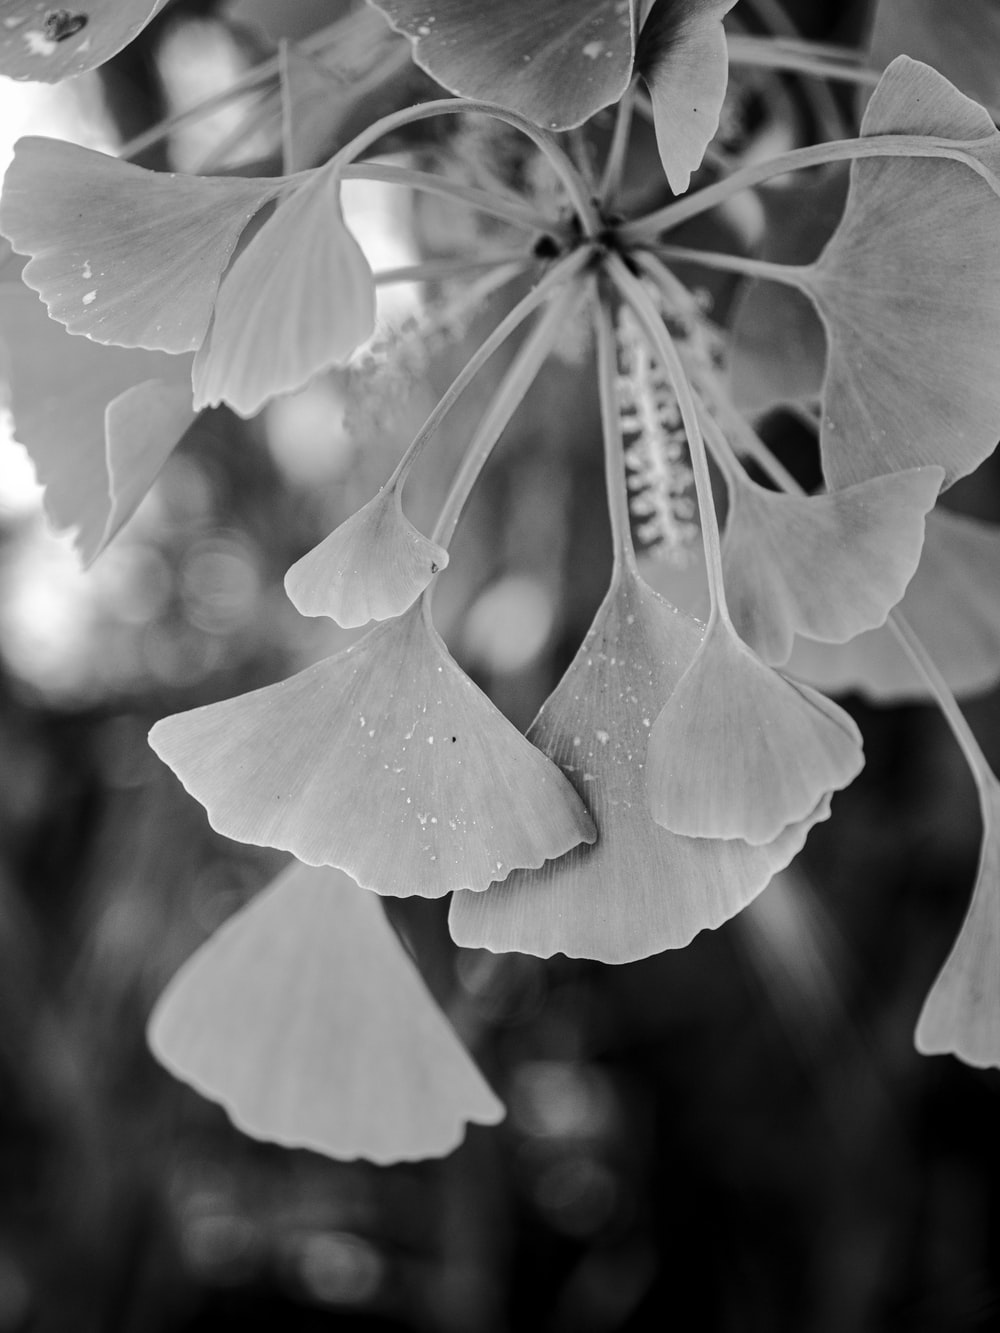 grayscale photo of flower with water droplets